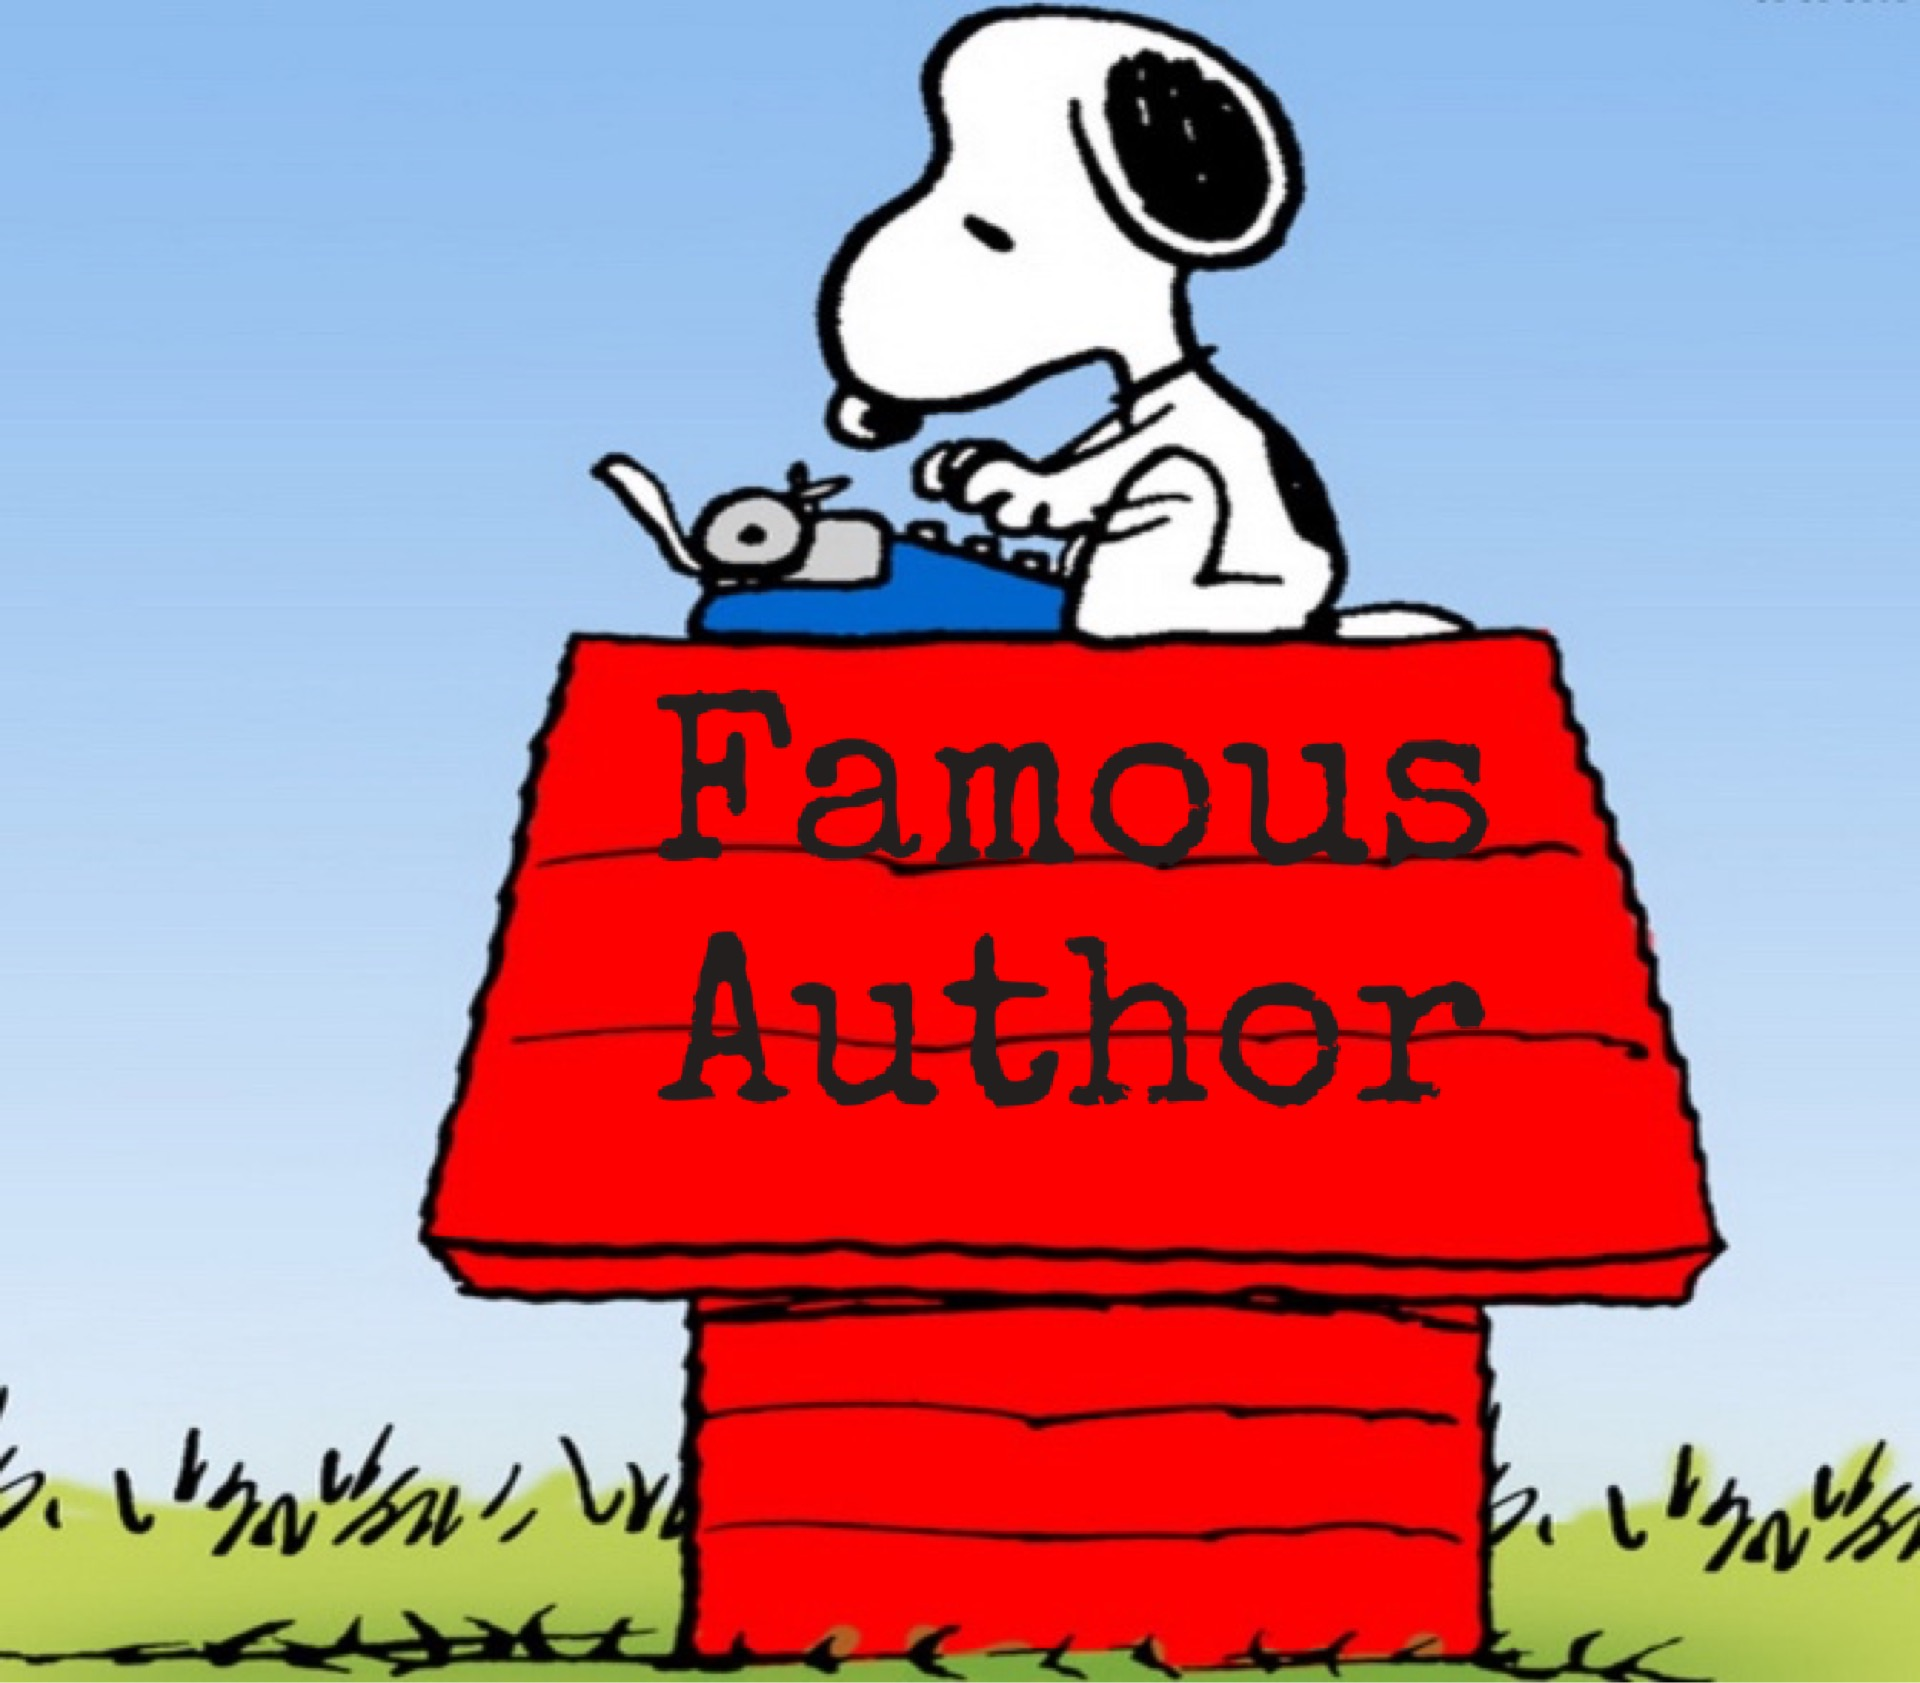 Has been the panda. Writer clipart famous author